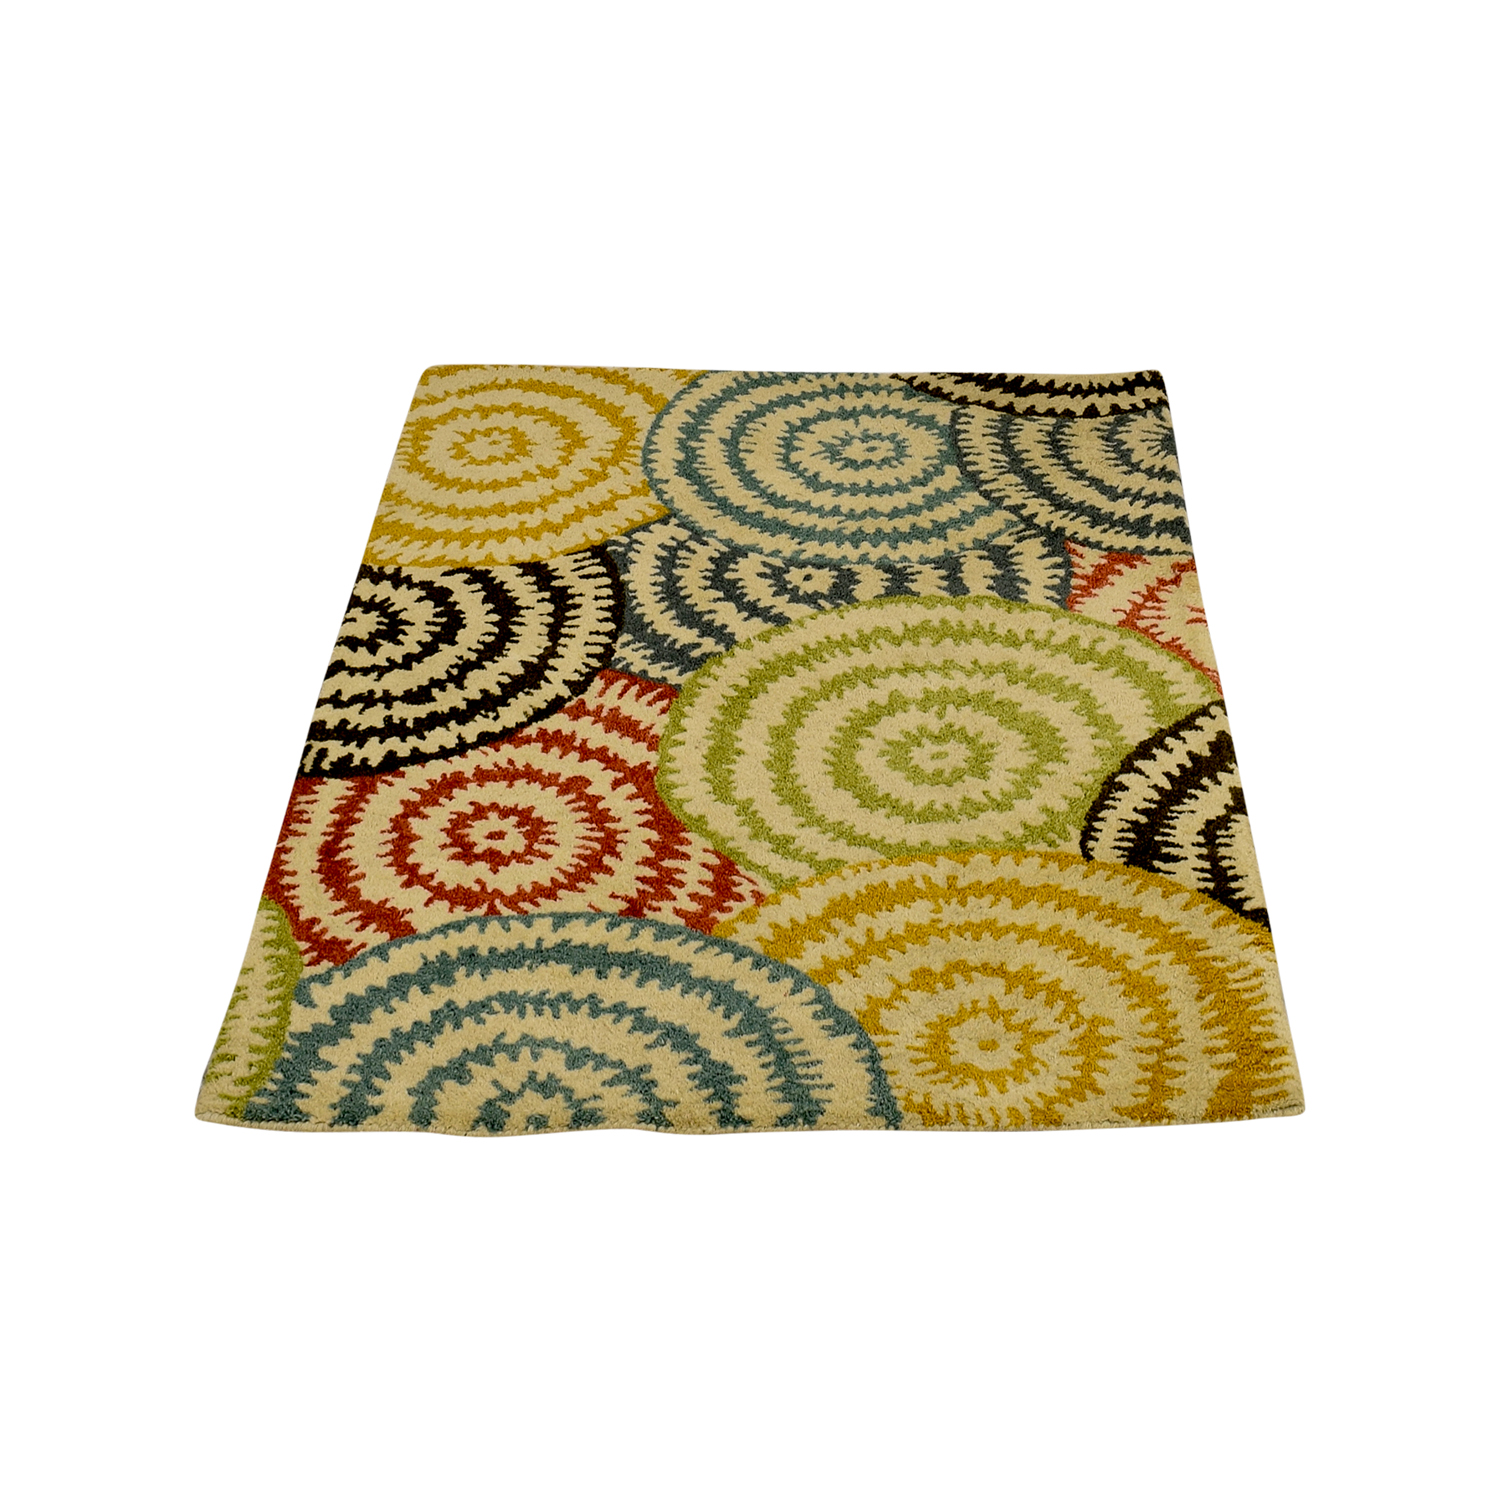 Crate & Barrel Crate & Barrel Pinwheel Rug price